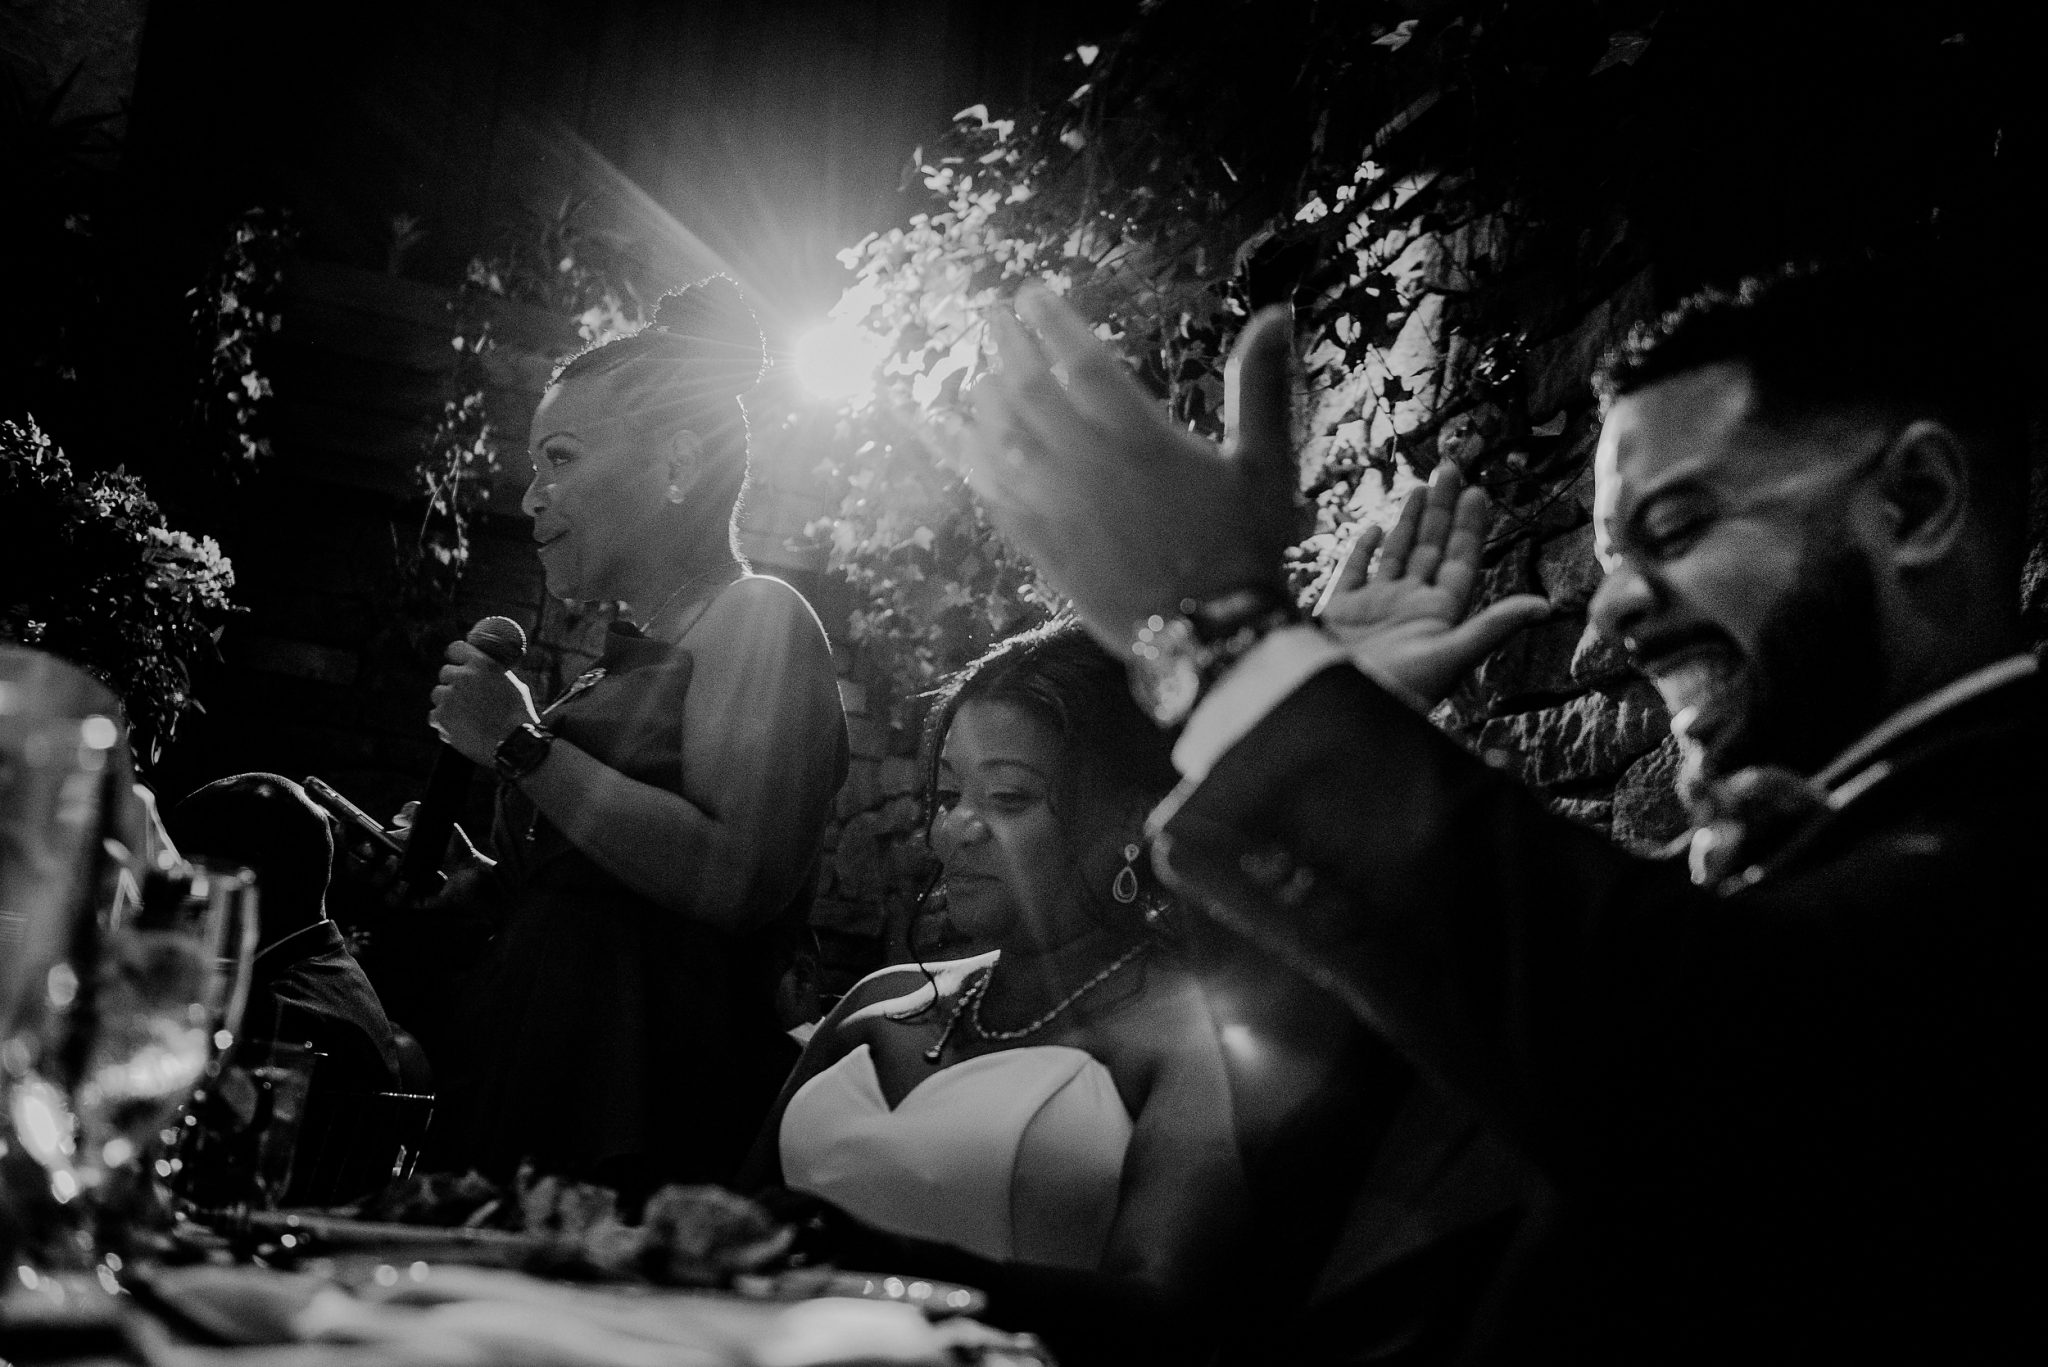 candid and creative wedding speech photo at fox hollow